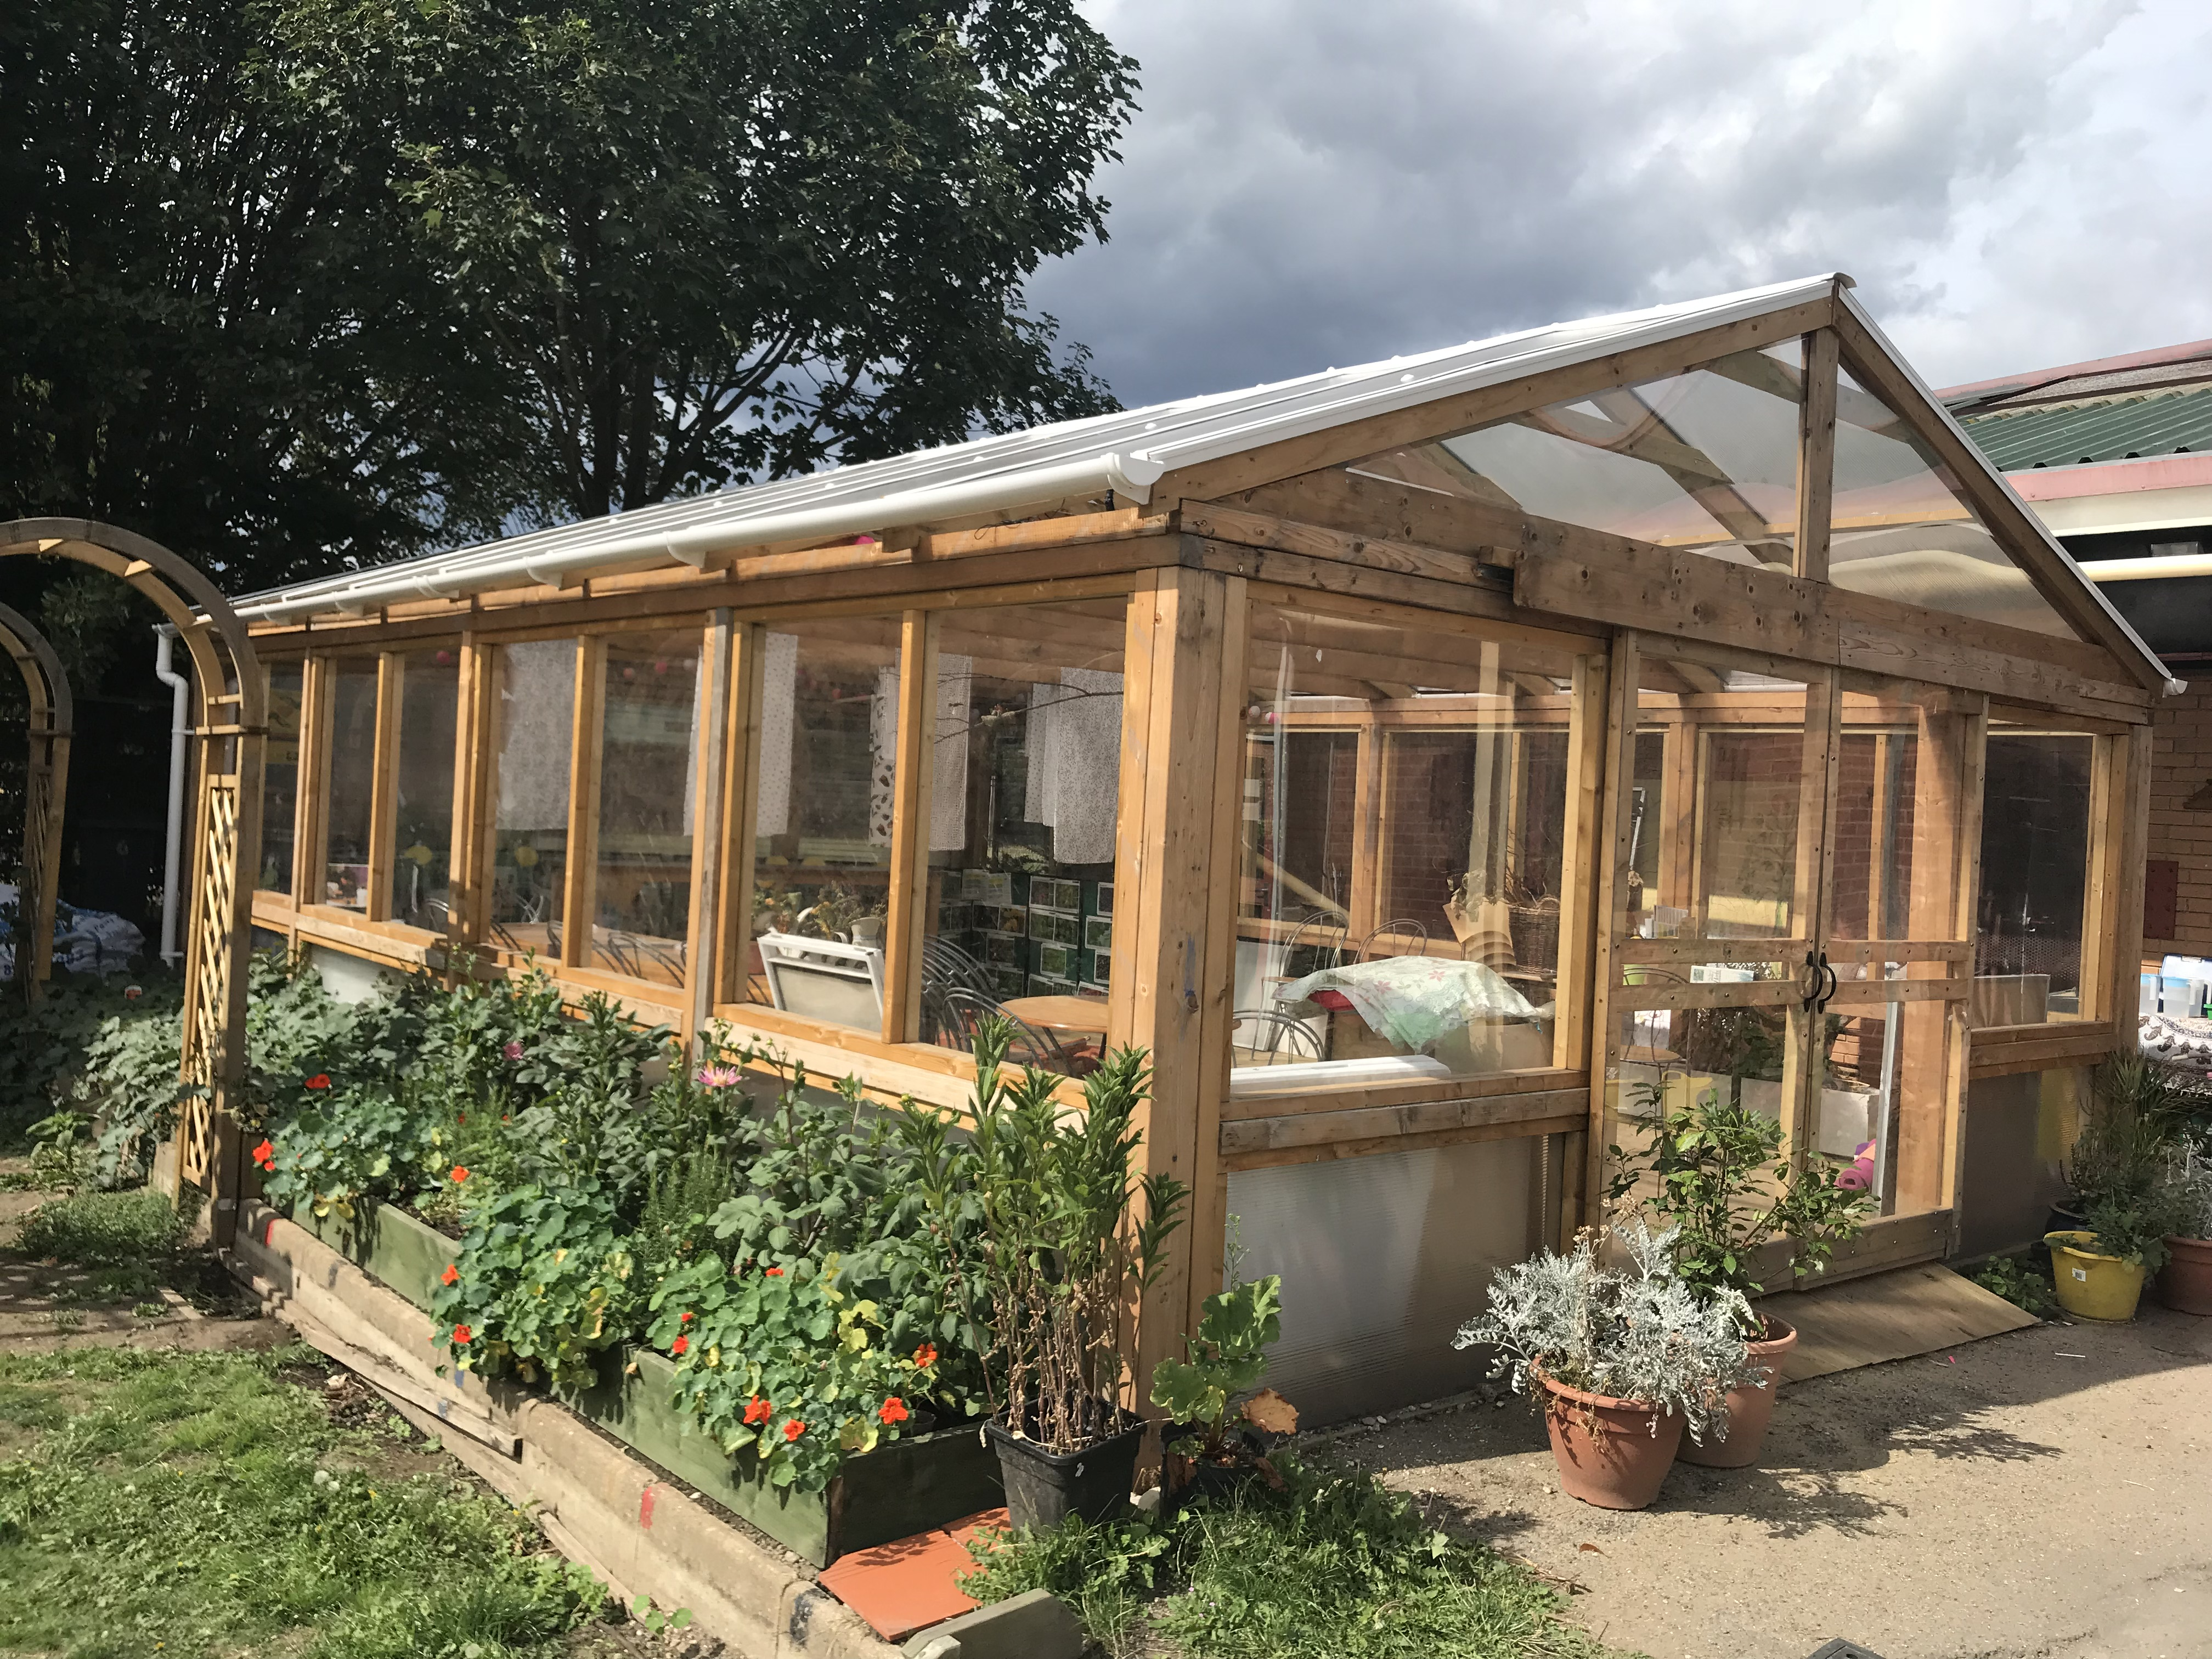 LUOS Conservatory